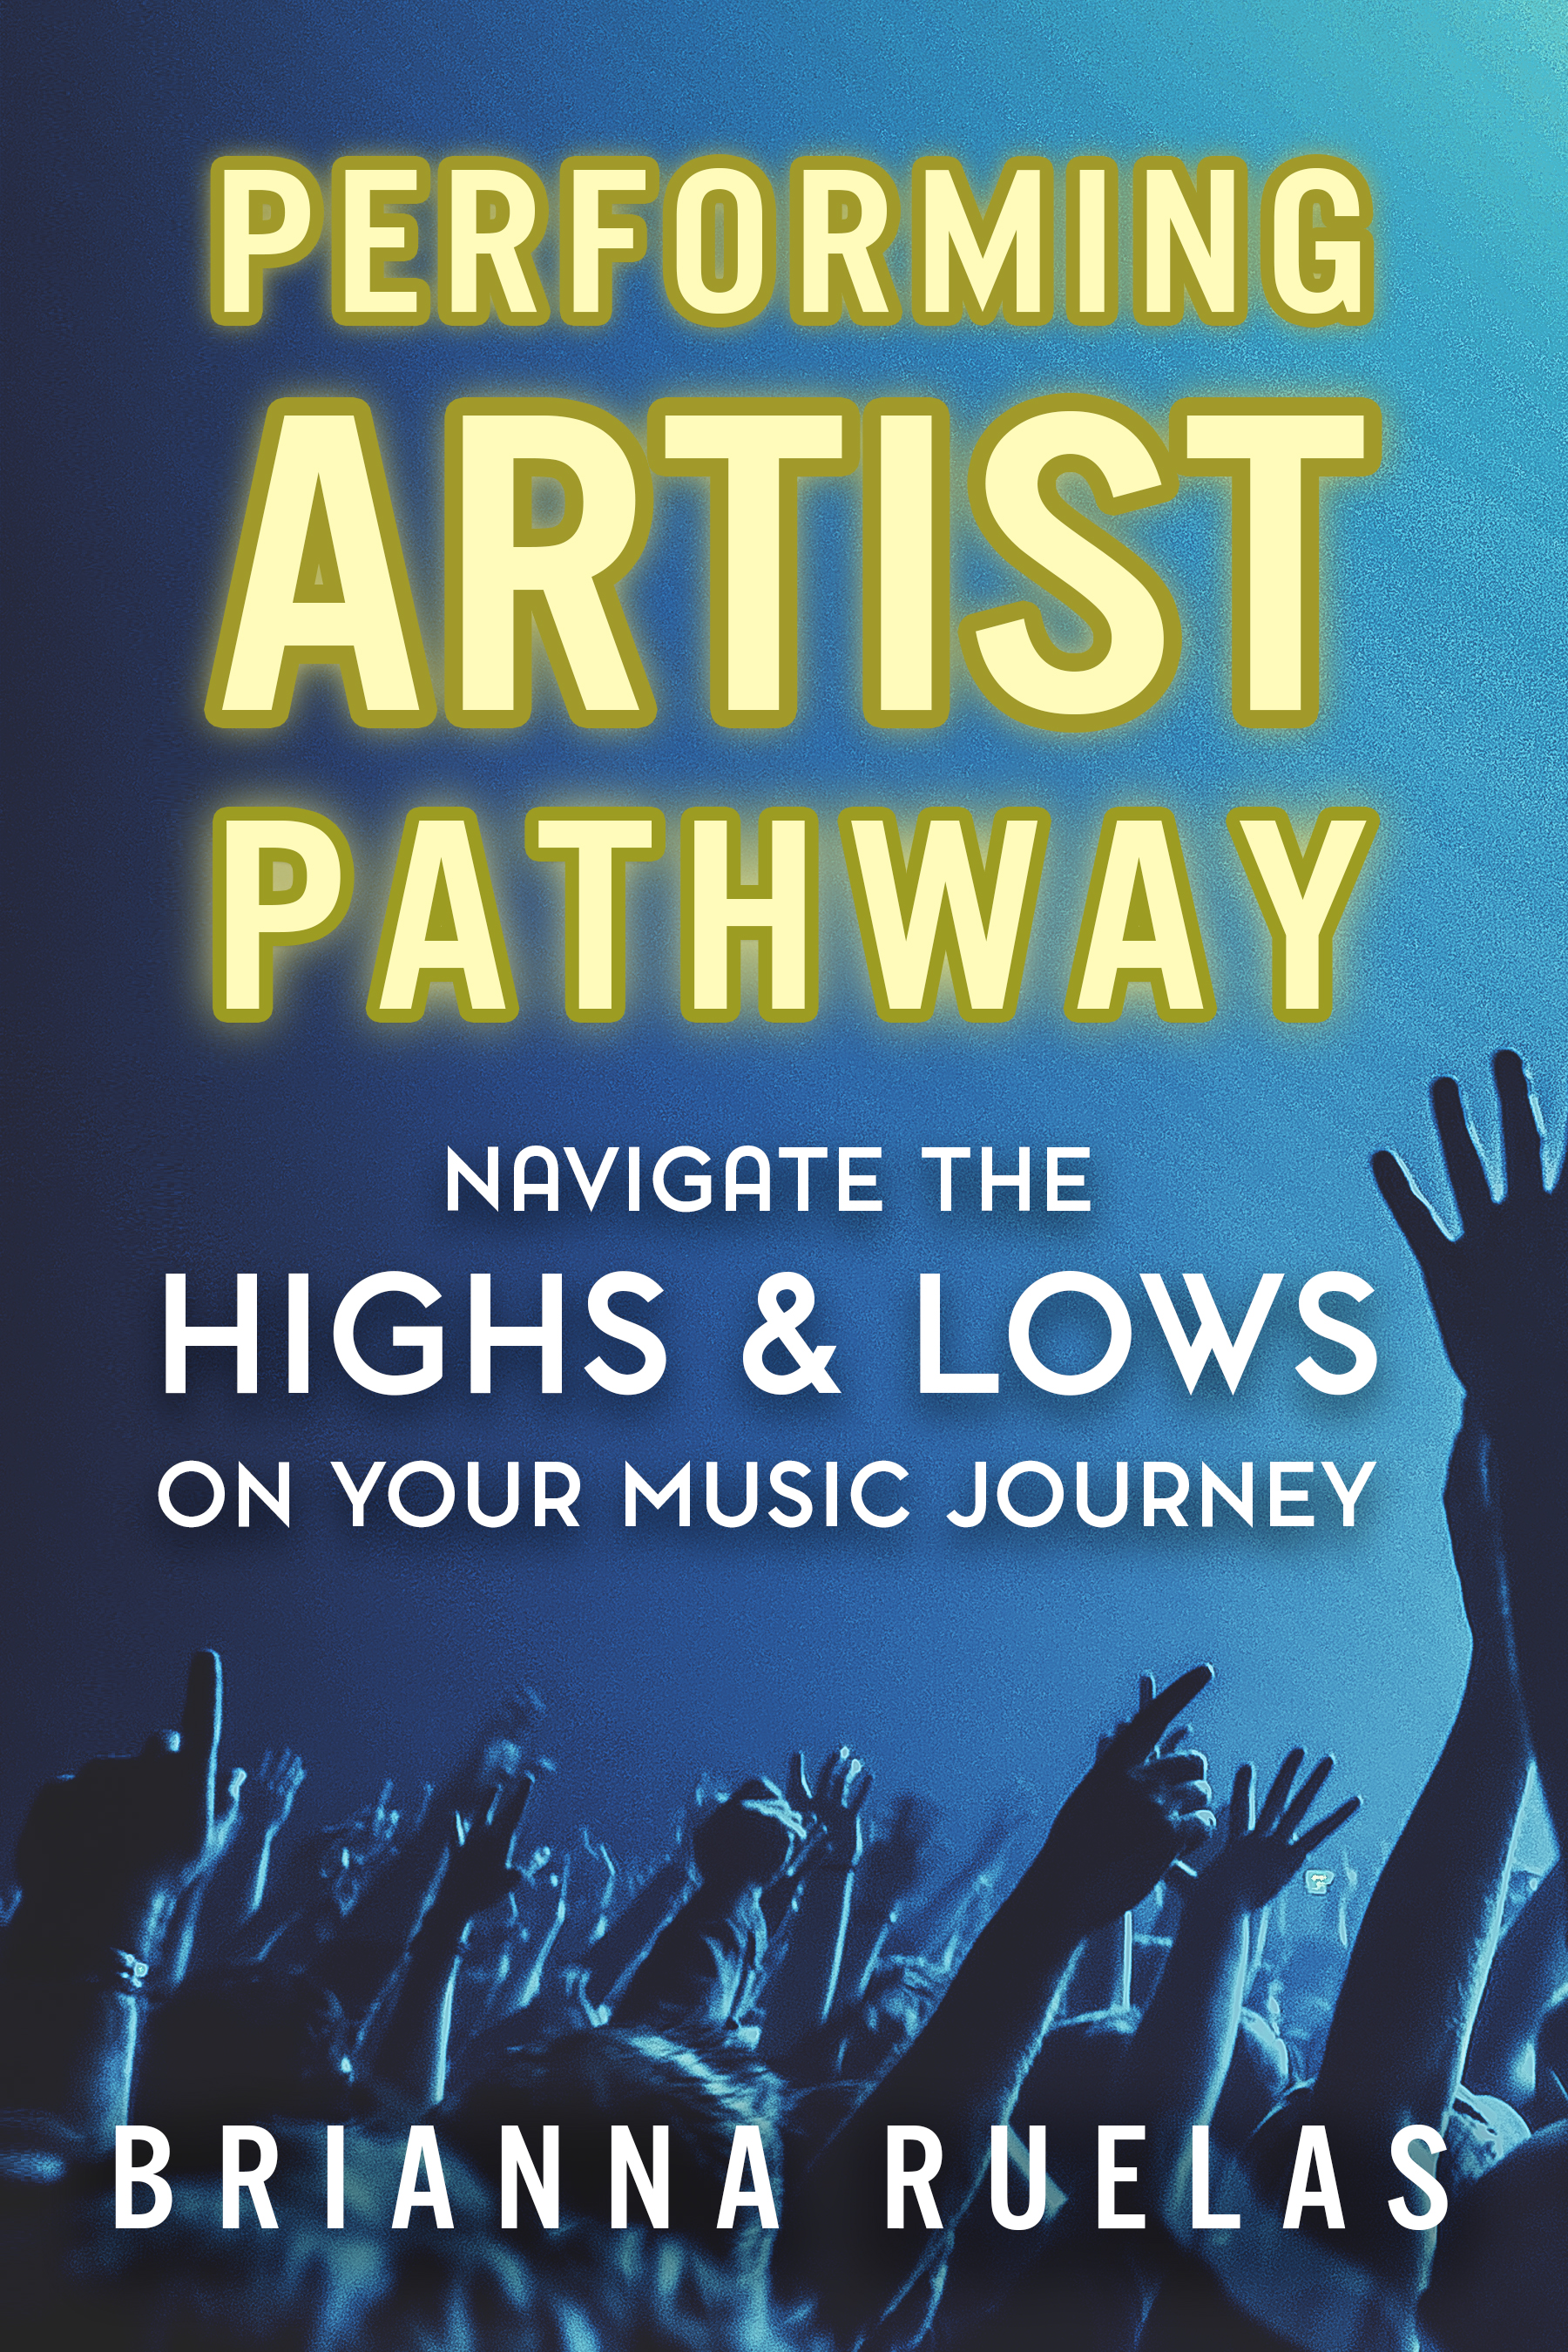 Performing Artist Pathway: Navigate the Highs & Lows on Your Music Journey - Your Go To Guide When You're In A Performing Artist Pinch & Need The Perfect Advice!